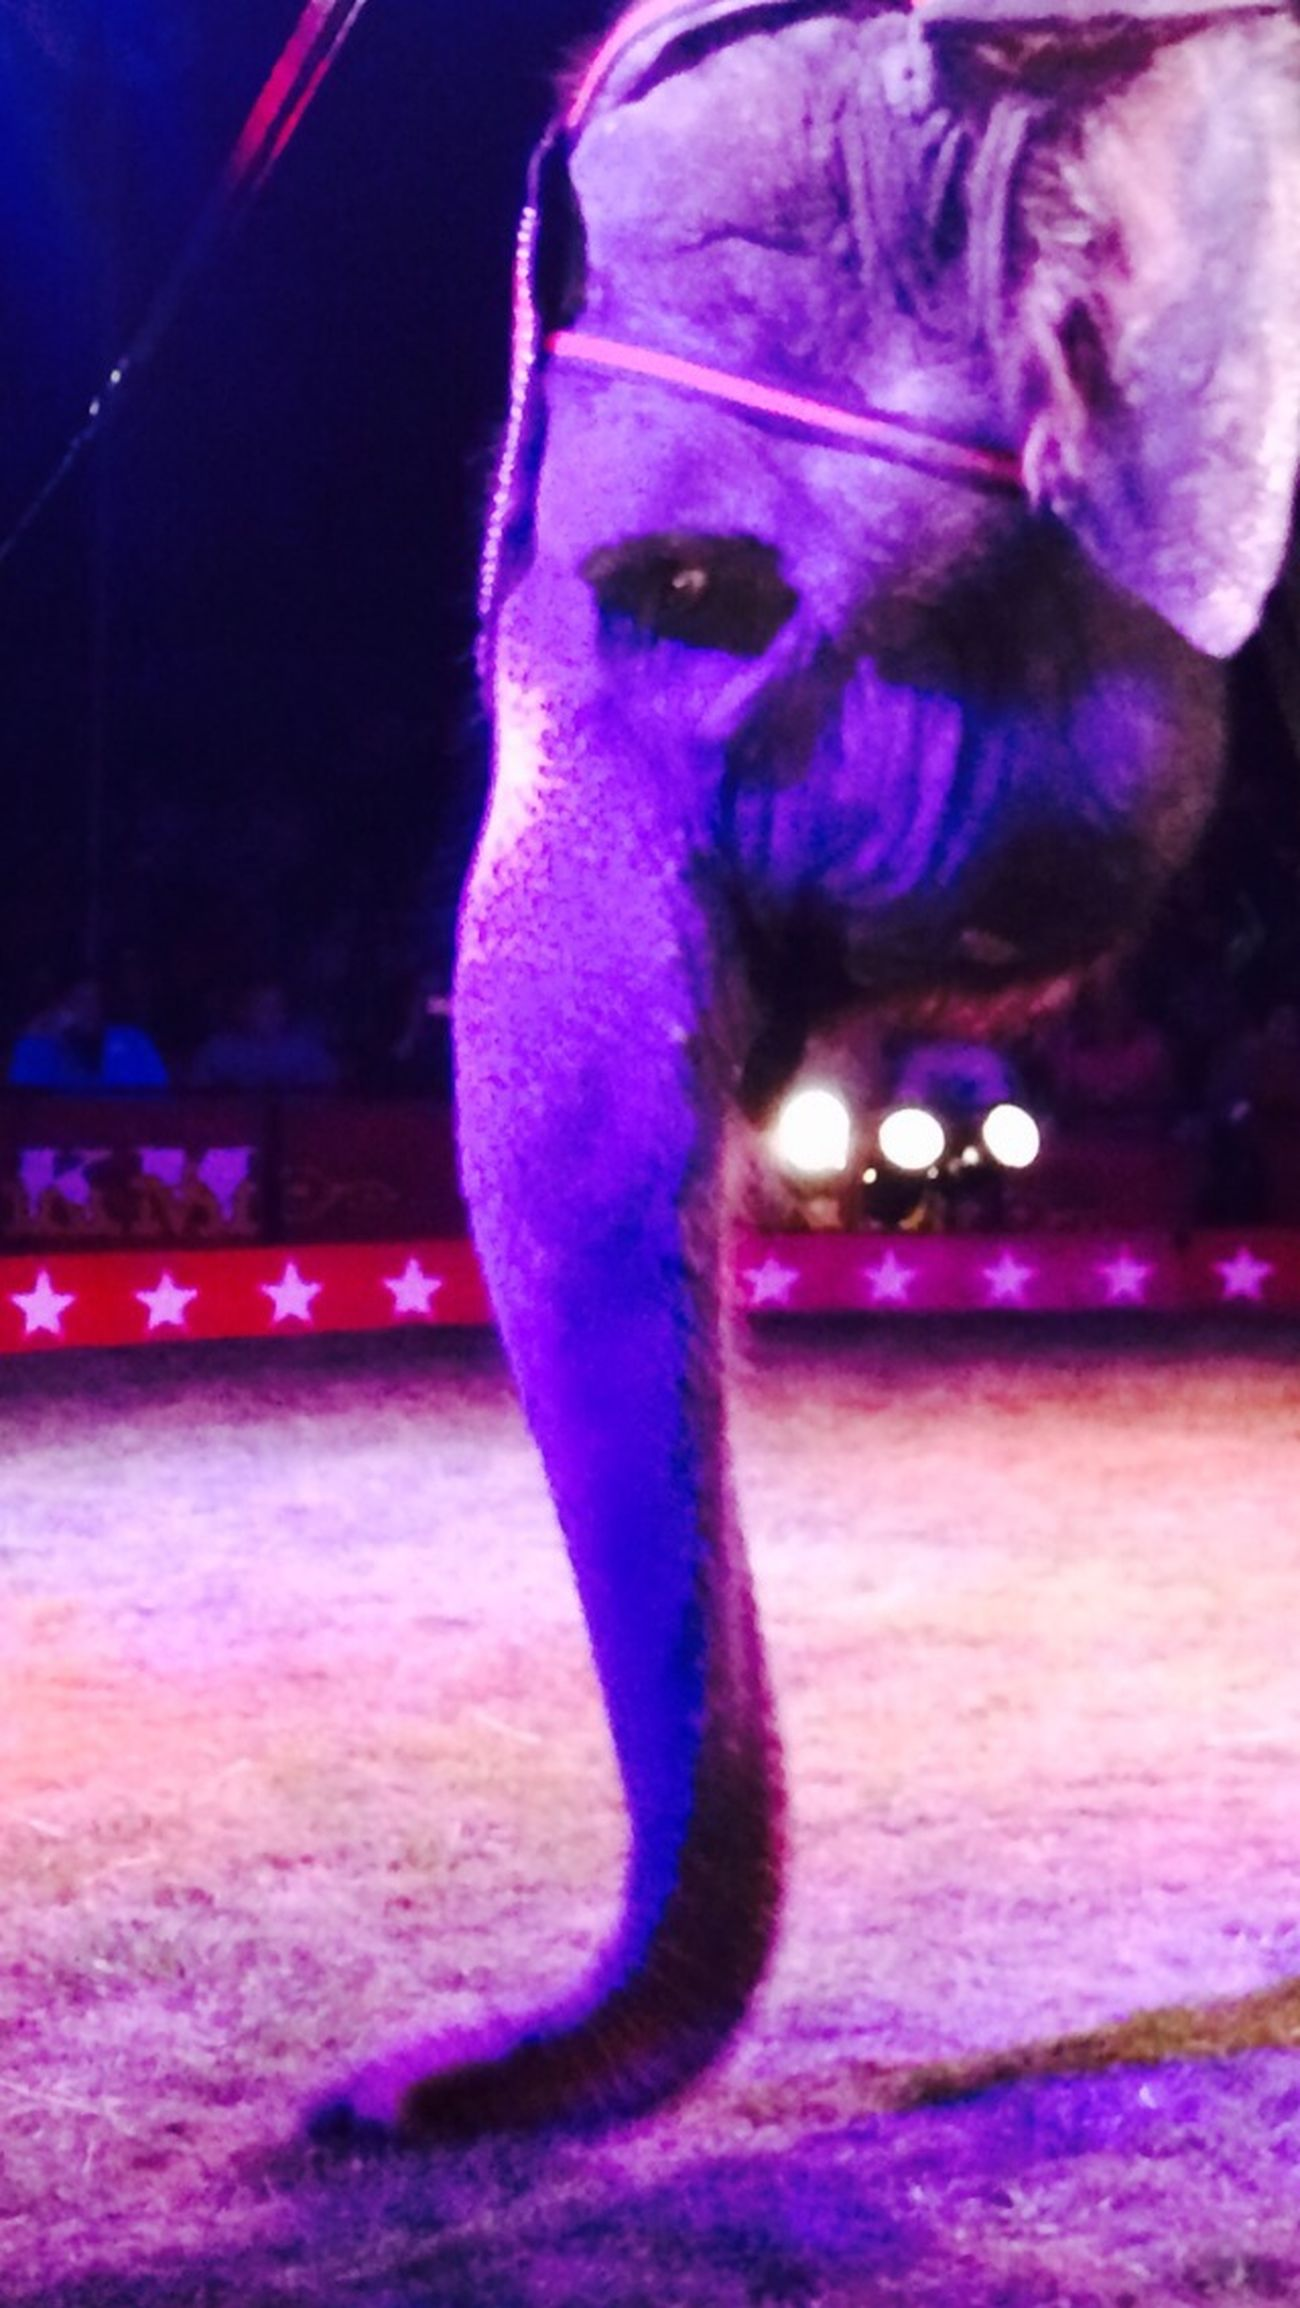 Elephant Melancholy Trapped The Purist (no Edit, No Filter)